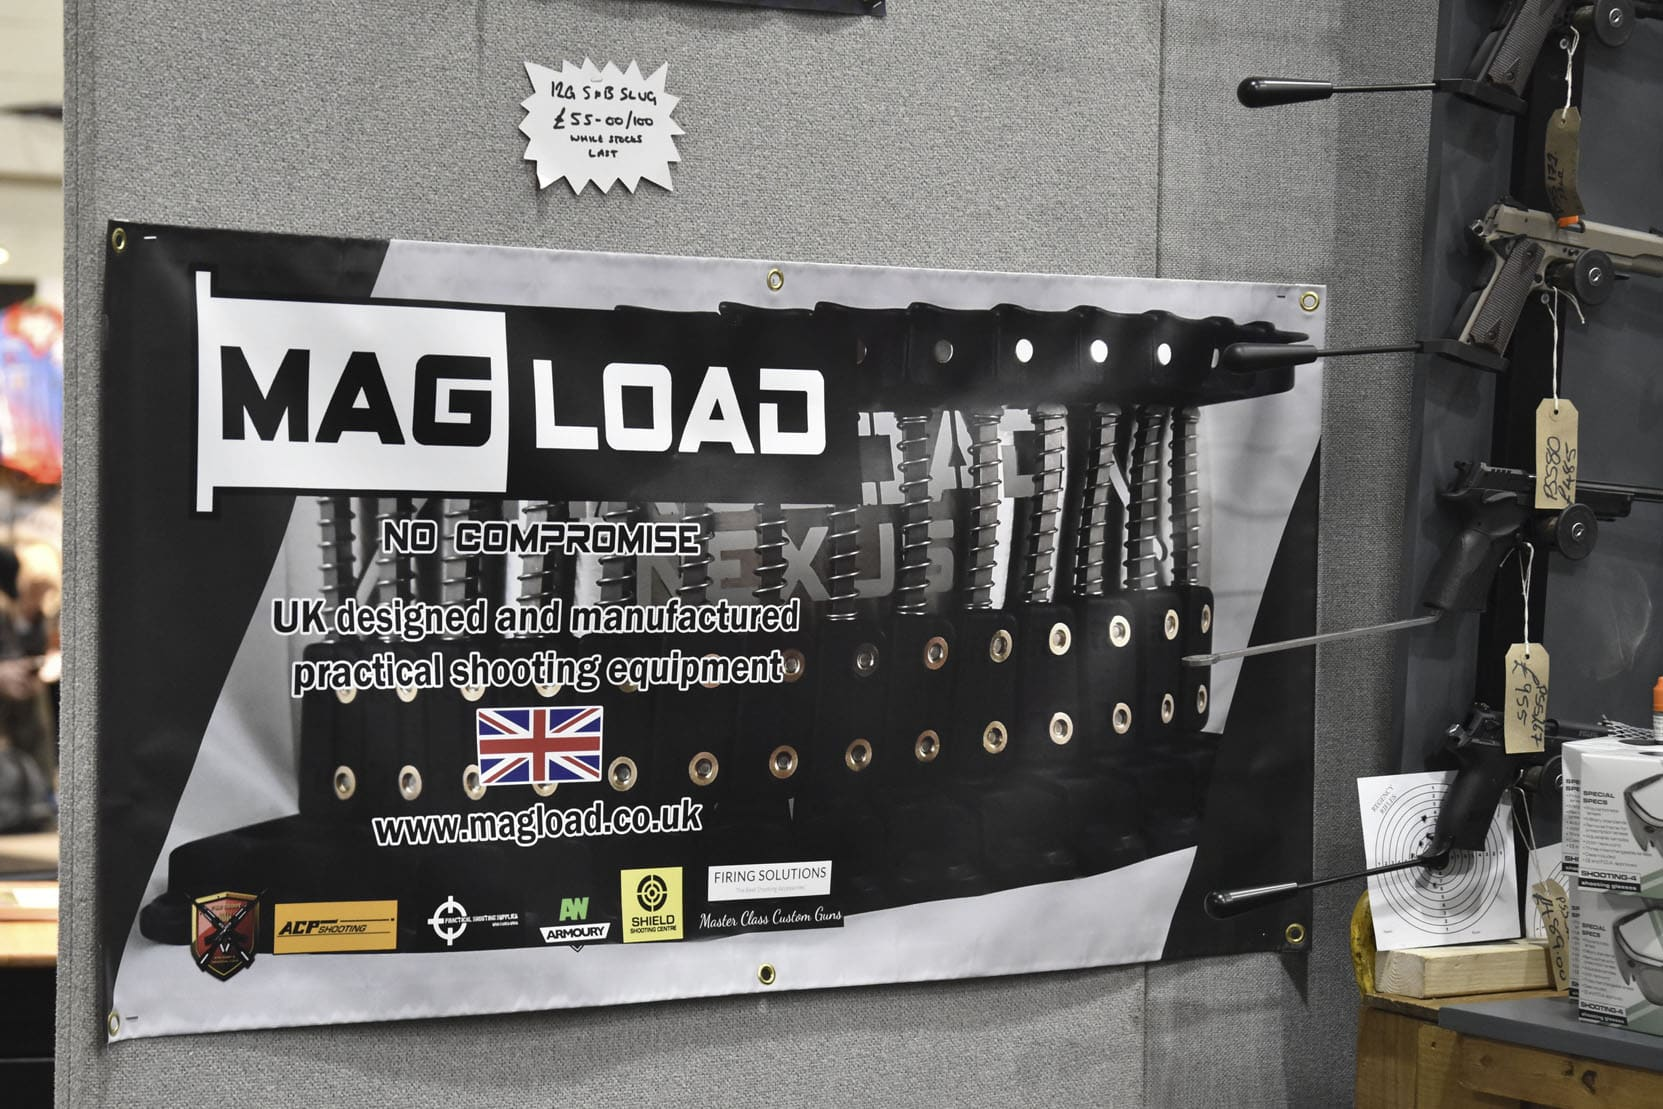 target-shooting-show-uk-slide-7-magload.jpg